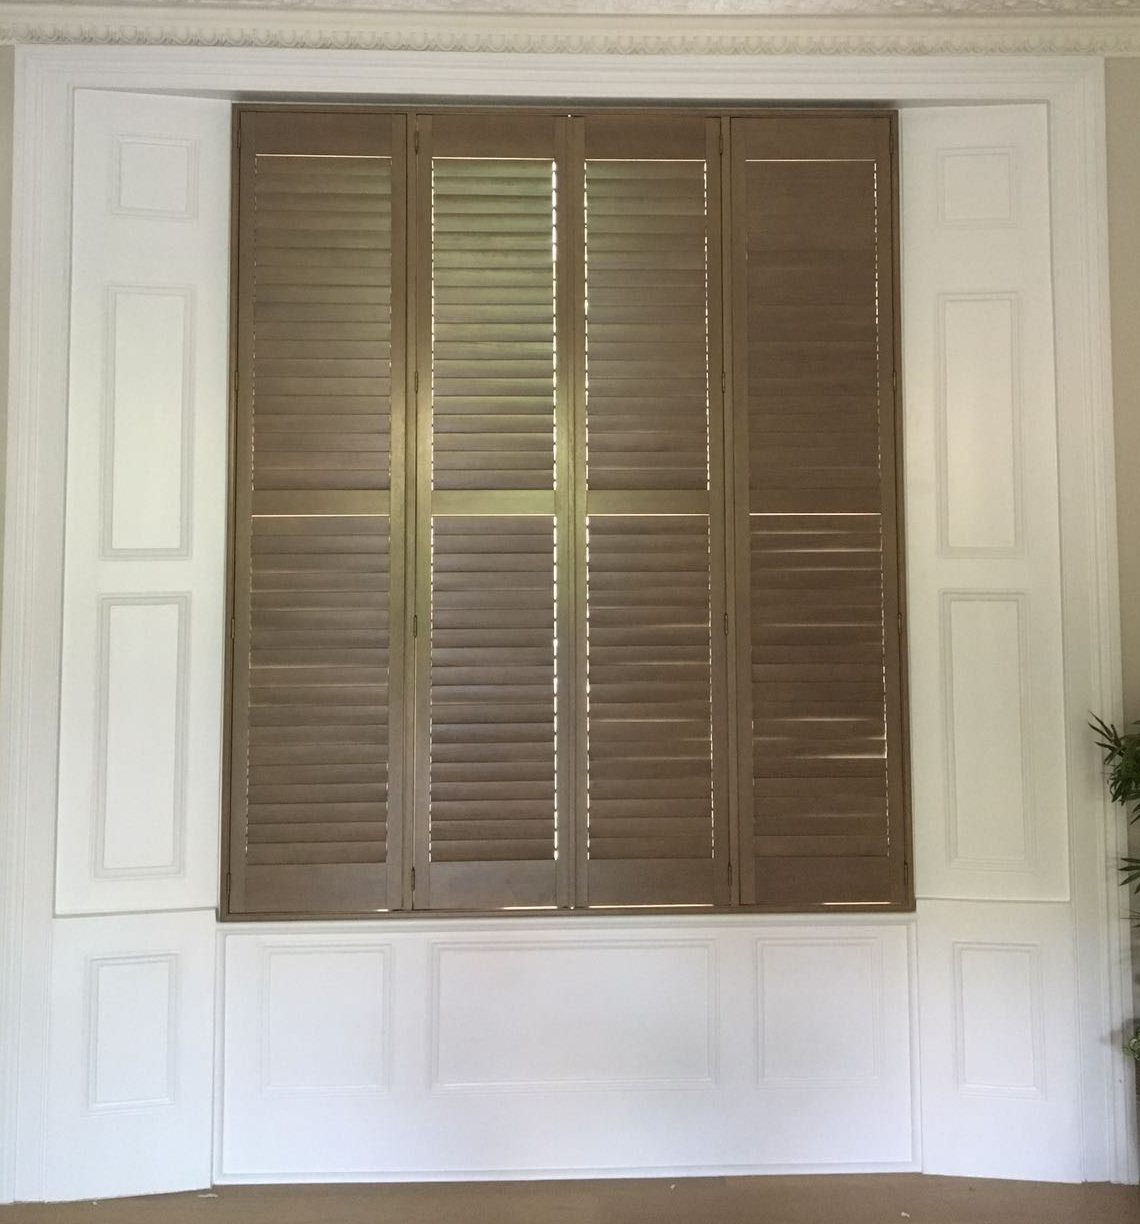 wooden window shutters appeal home shading. Black Bedroom Furniture Sets. Home Design Ideas